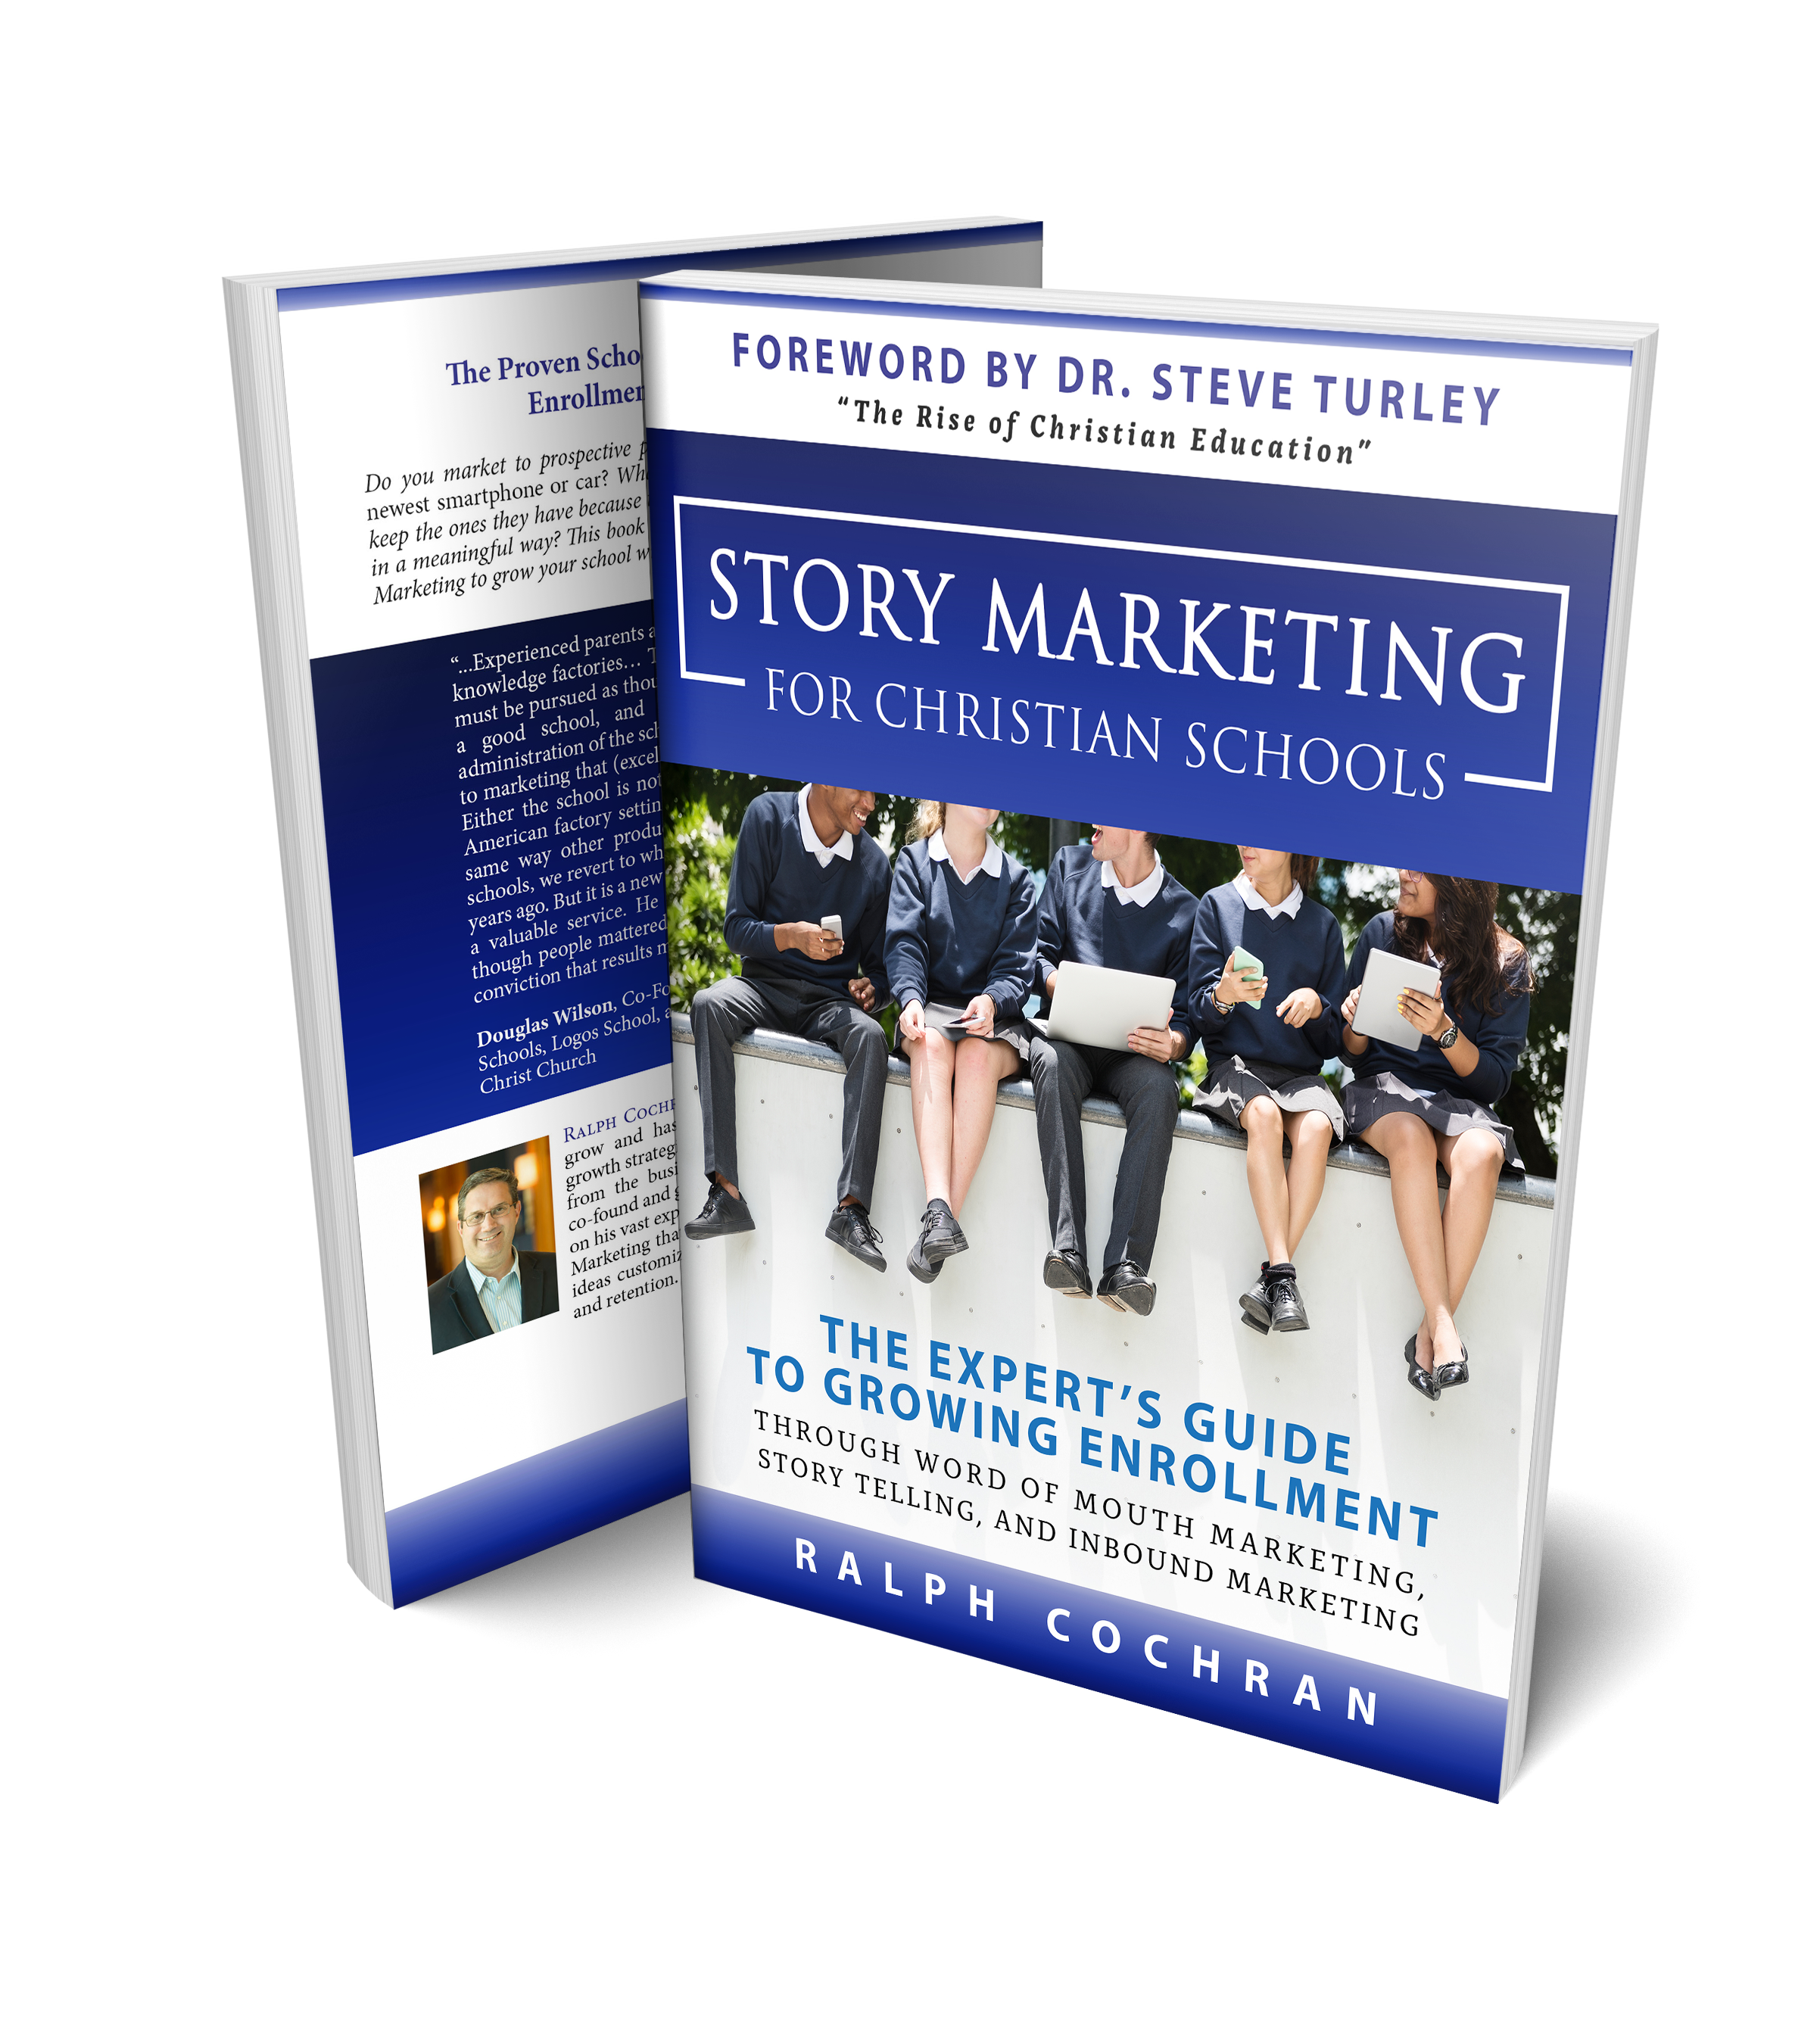 Story Marketing for Christian Schools; The Expert's Guide to Growing Enrollment Through Word of Mouth Marketing, Story Telling & Inbound Marketing